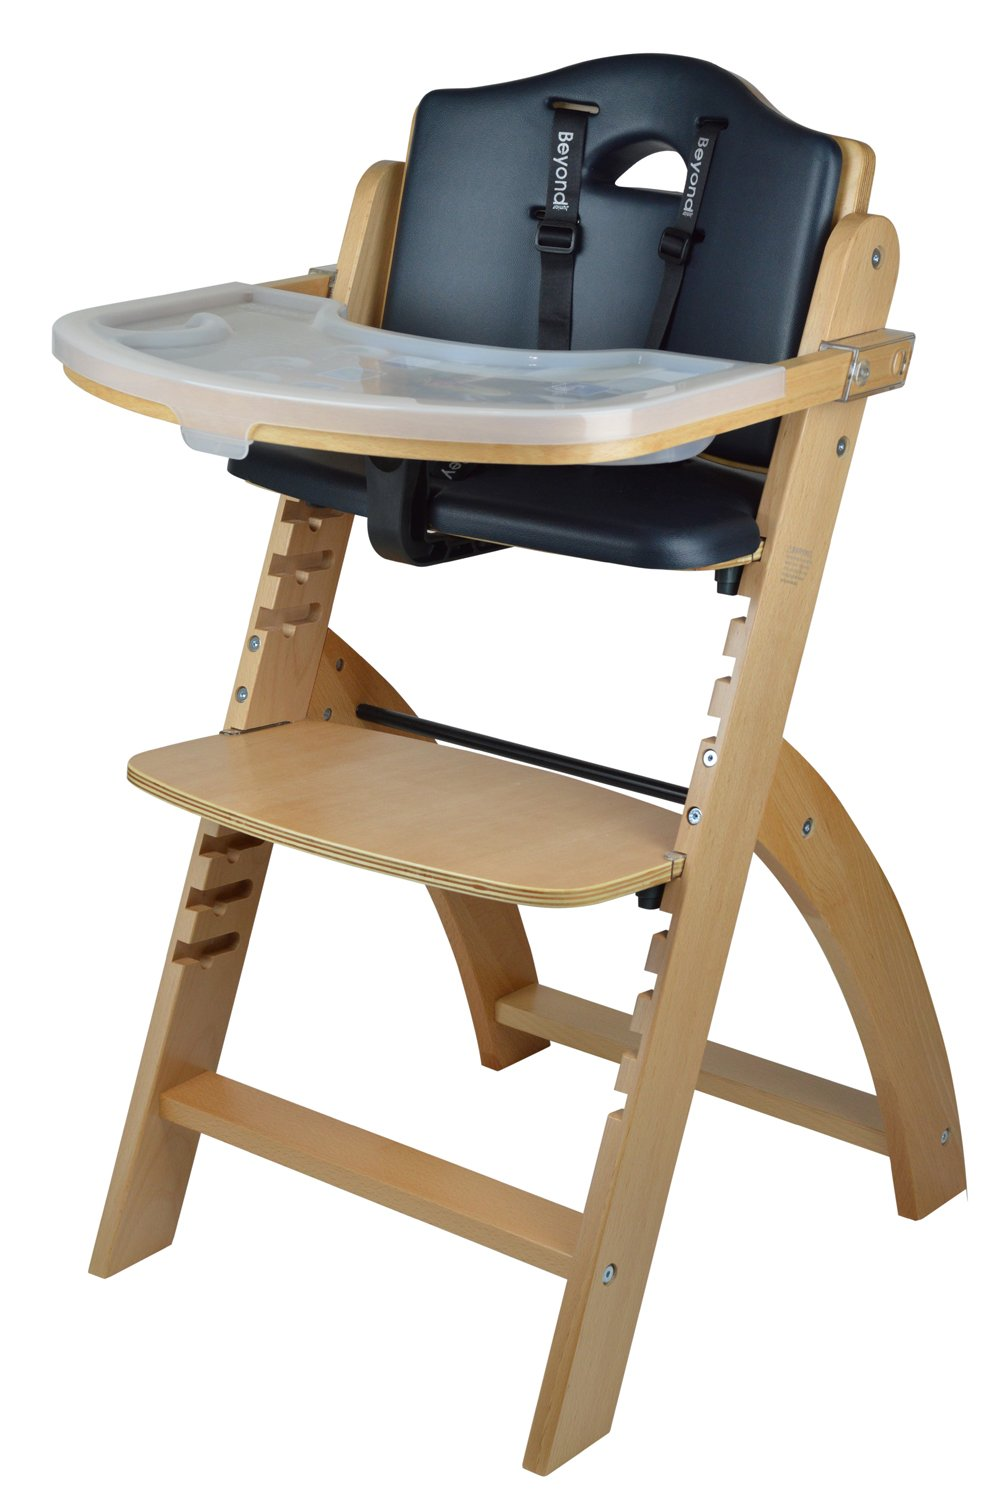 Abiie Beyond Wooden High Chair with Tray. The Perfect Adjustable Baby Highchair Solution for Your Babies and Toddlers or as a Dining Chair. (6 Months up to 250 Lb) (Natural Wood - Black Cushion) by Abiie